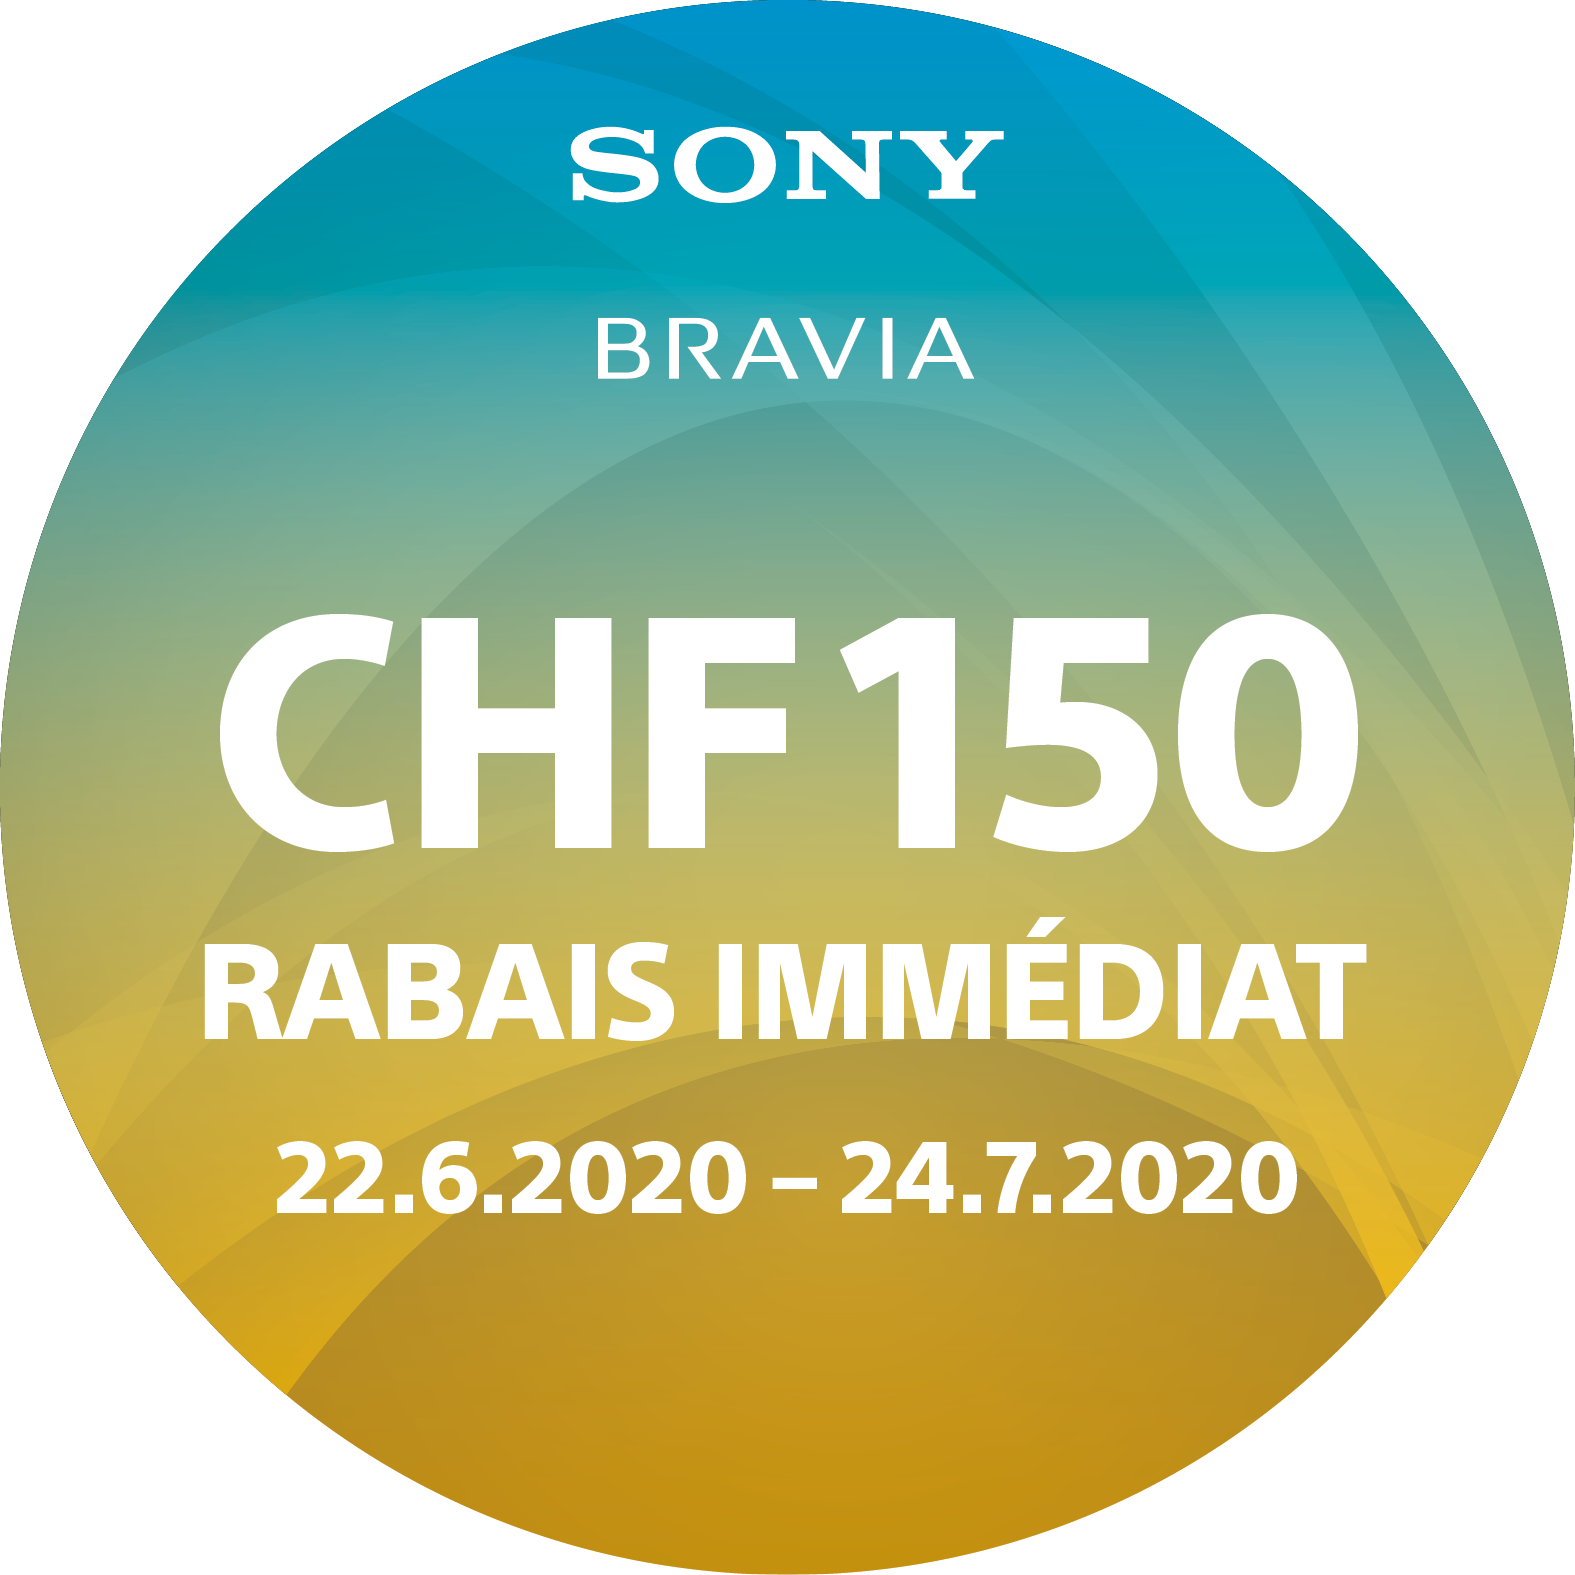 Avec code d'action «SONYCB20»